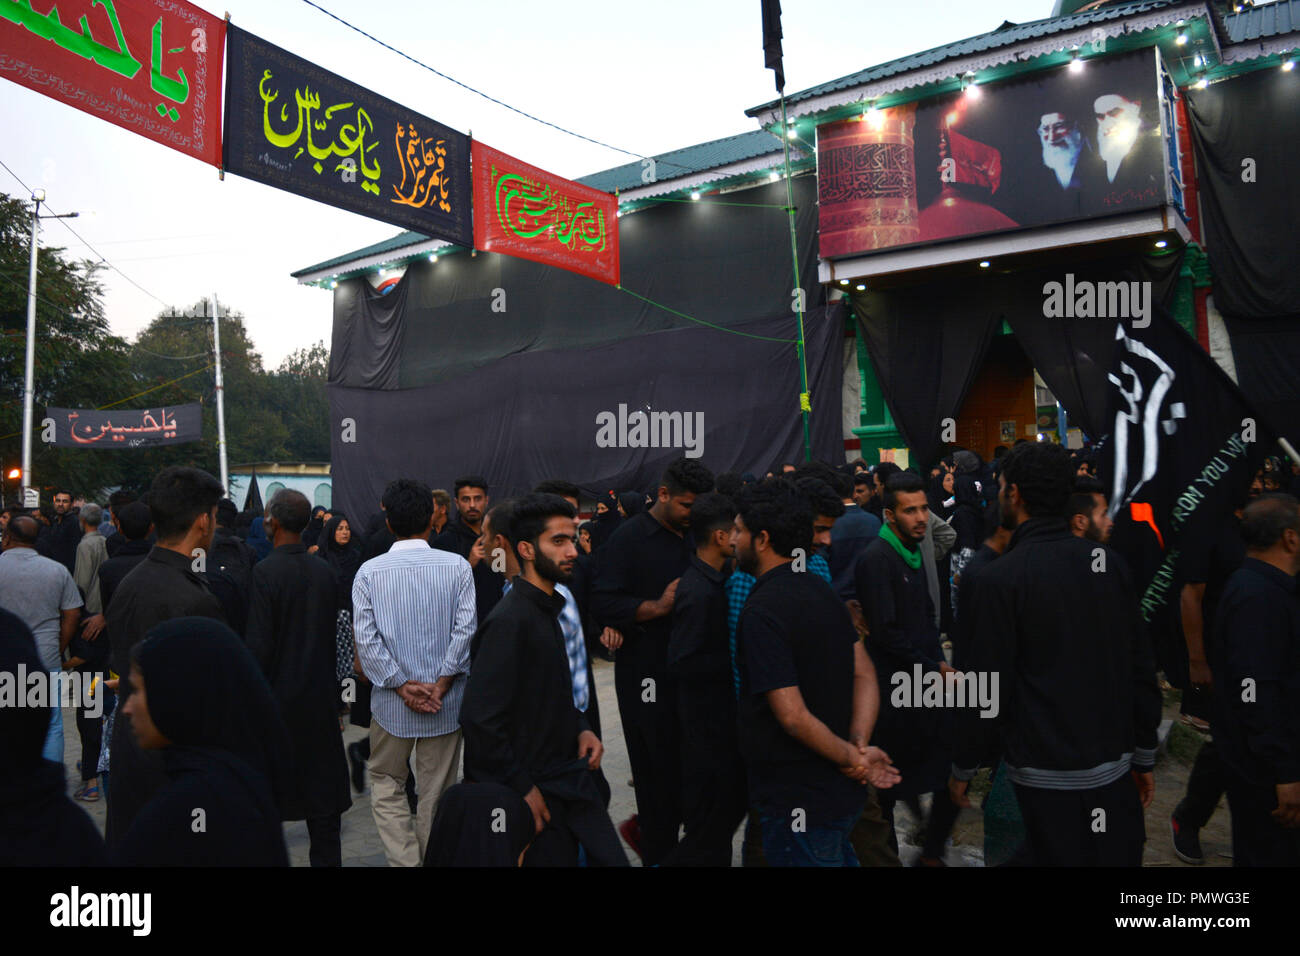 Kashmir Shiite Muslims seen during a religious procession on the seventh day of Ashura. Ashura marks the martyrdom anniversary of the Prophet Muhammed's grandson the revered Imam Hussein who was killed in Karbala, Iraq in 680 AD in southern Iraq in the seventh century. - Stock Image